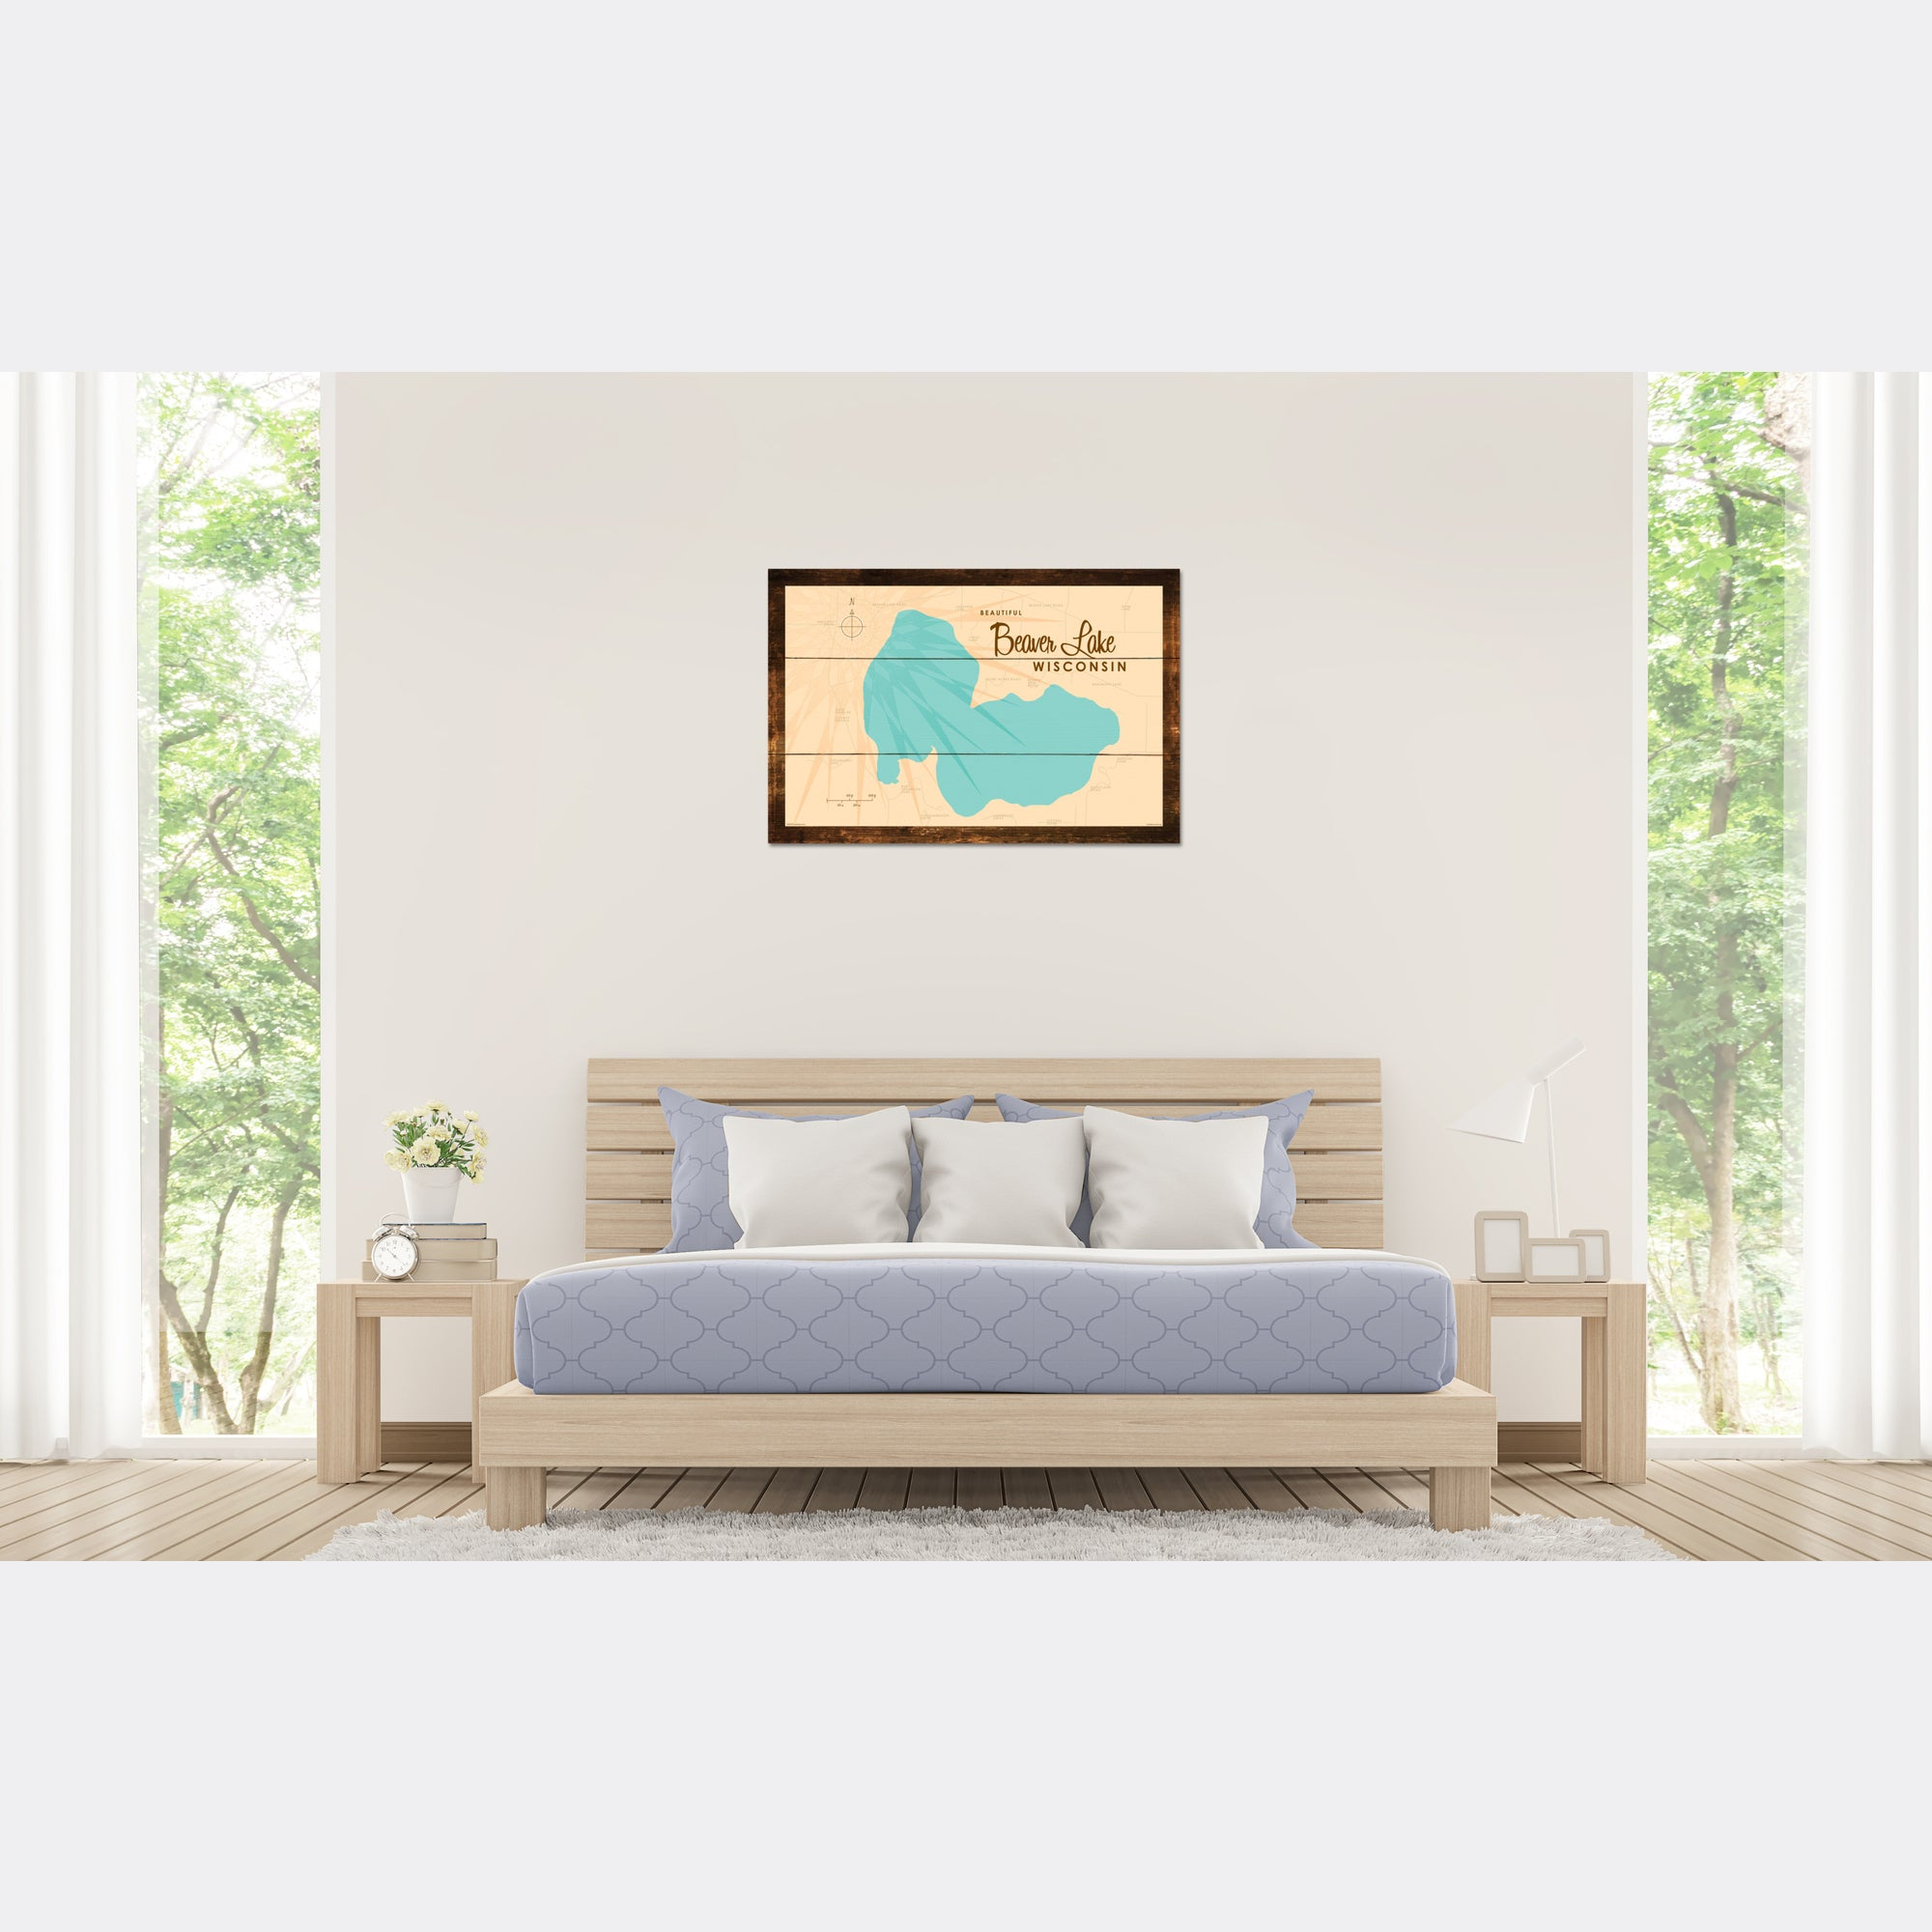 Beaver Lake Wisconsin, Rustic Wood Sign Map Art